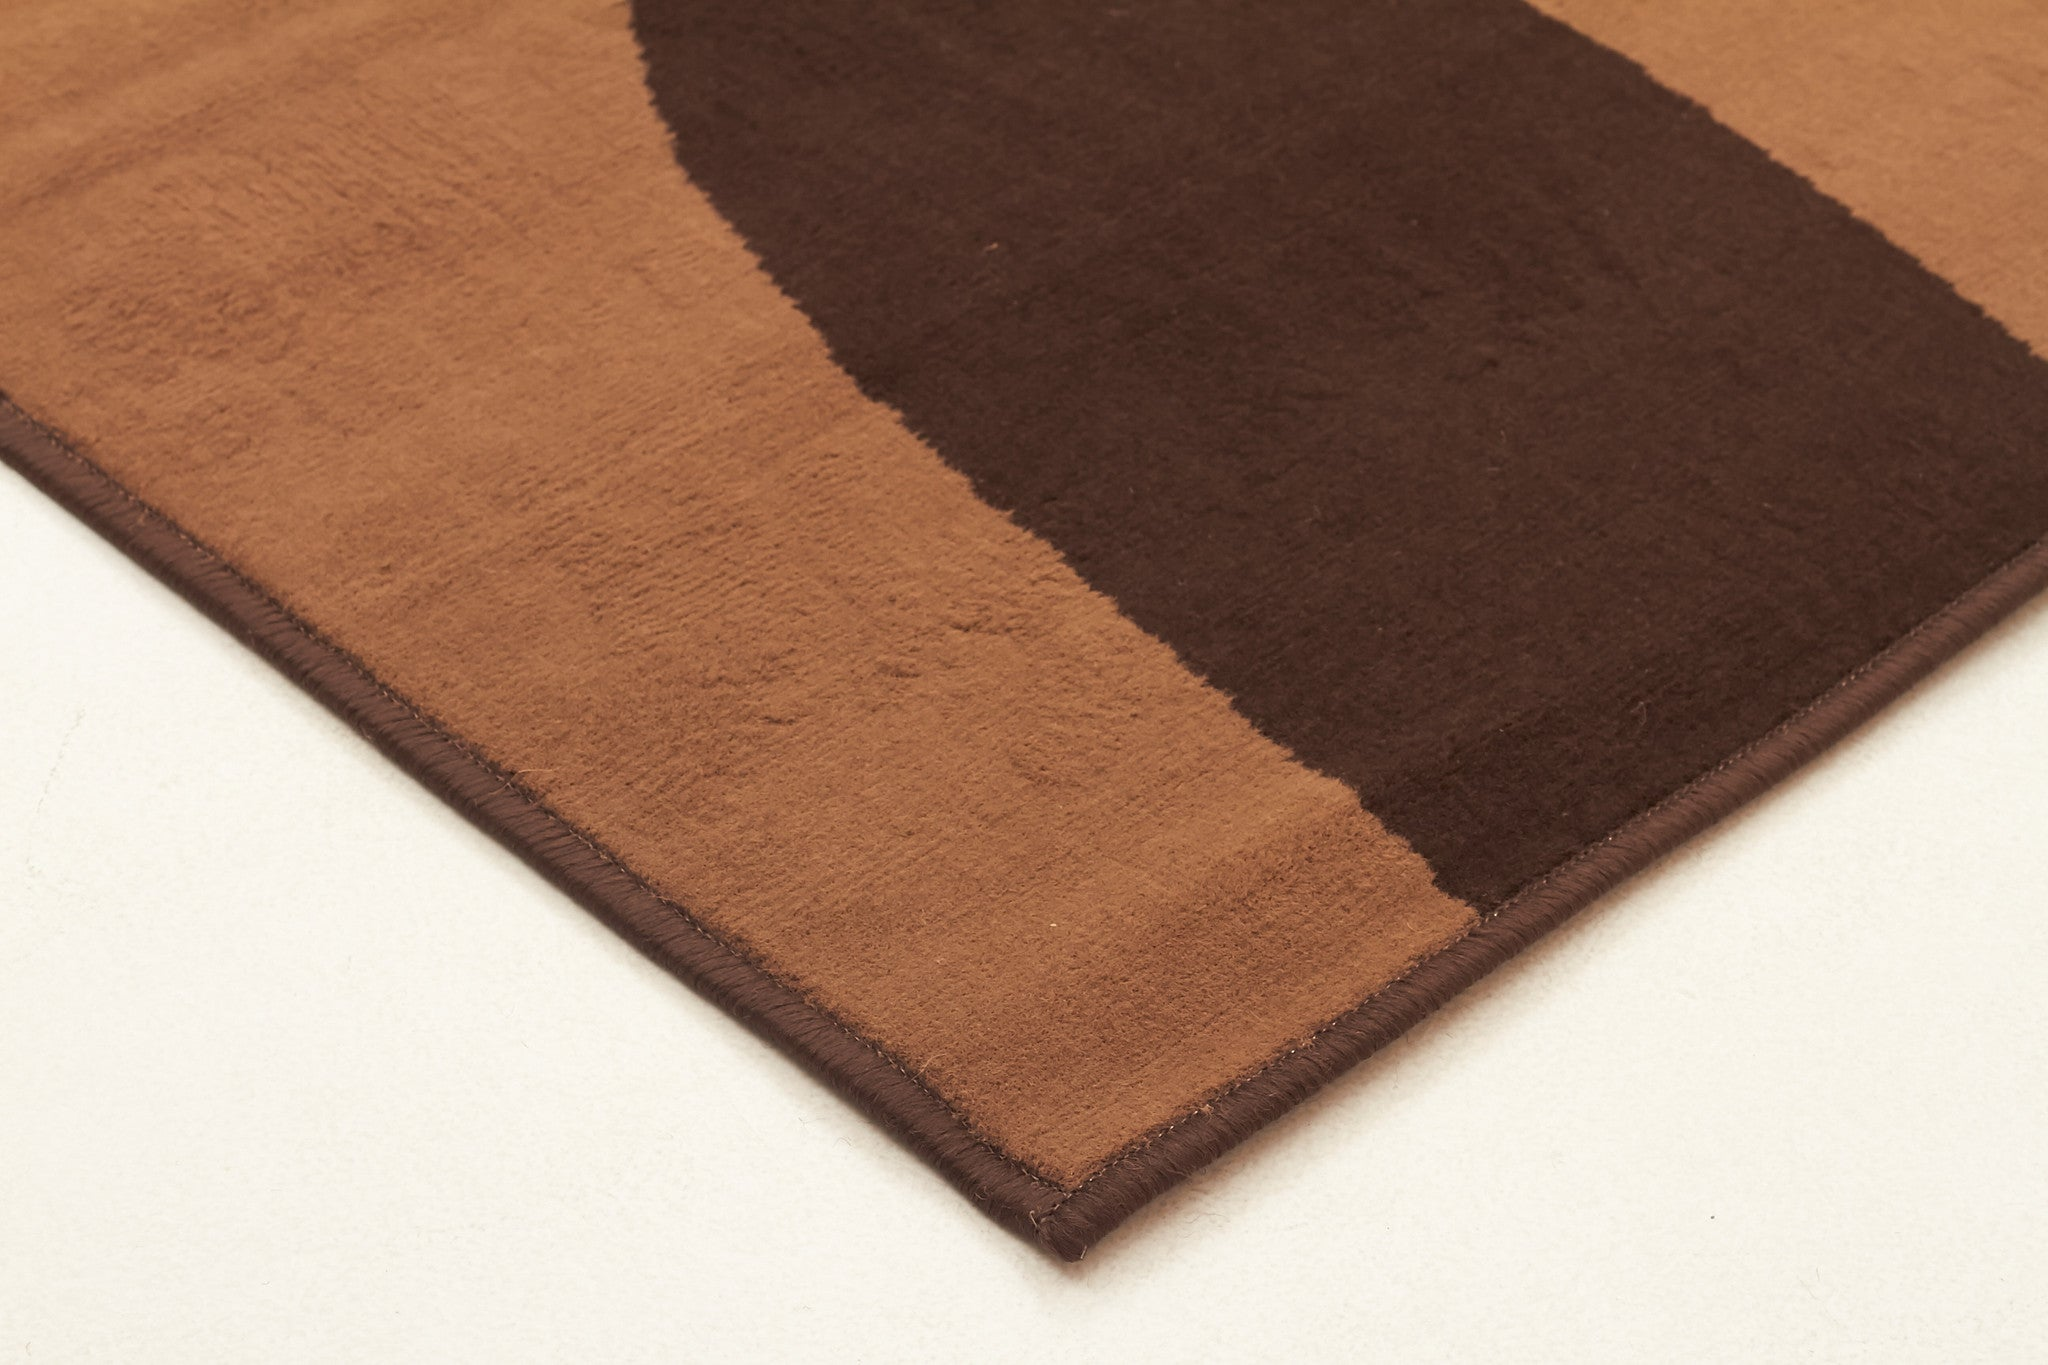 Funky Modern Rings Rugs Brown Beige